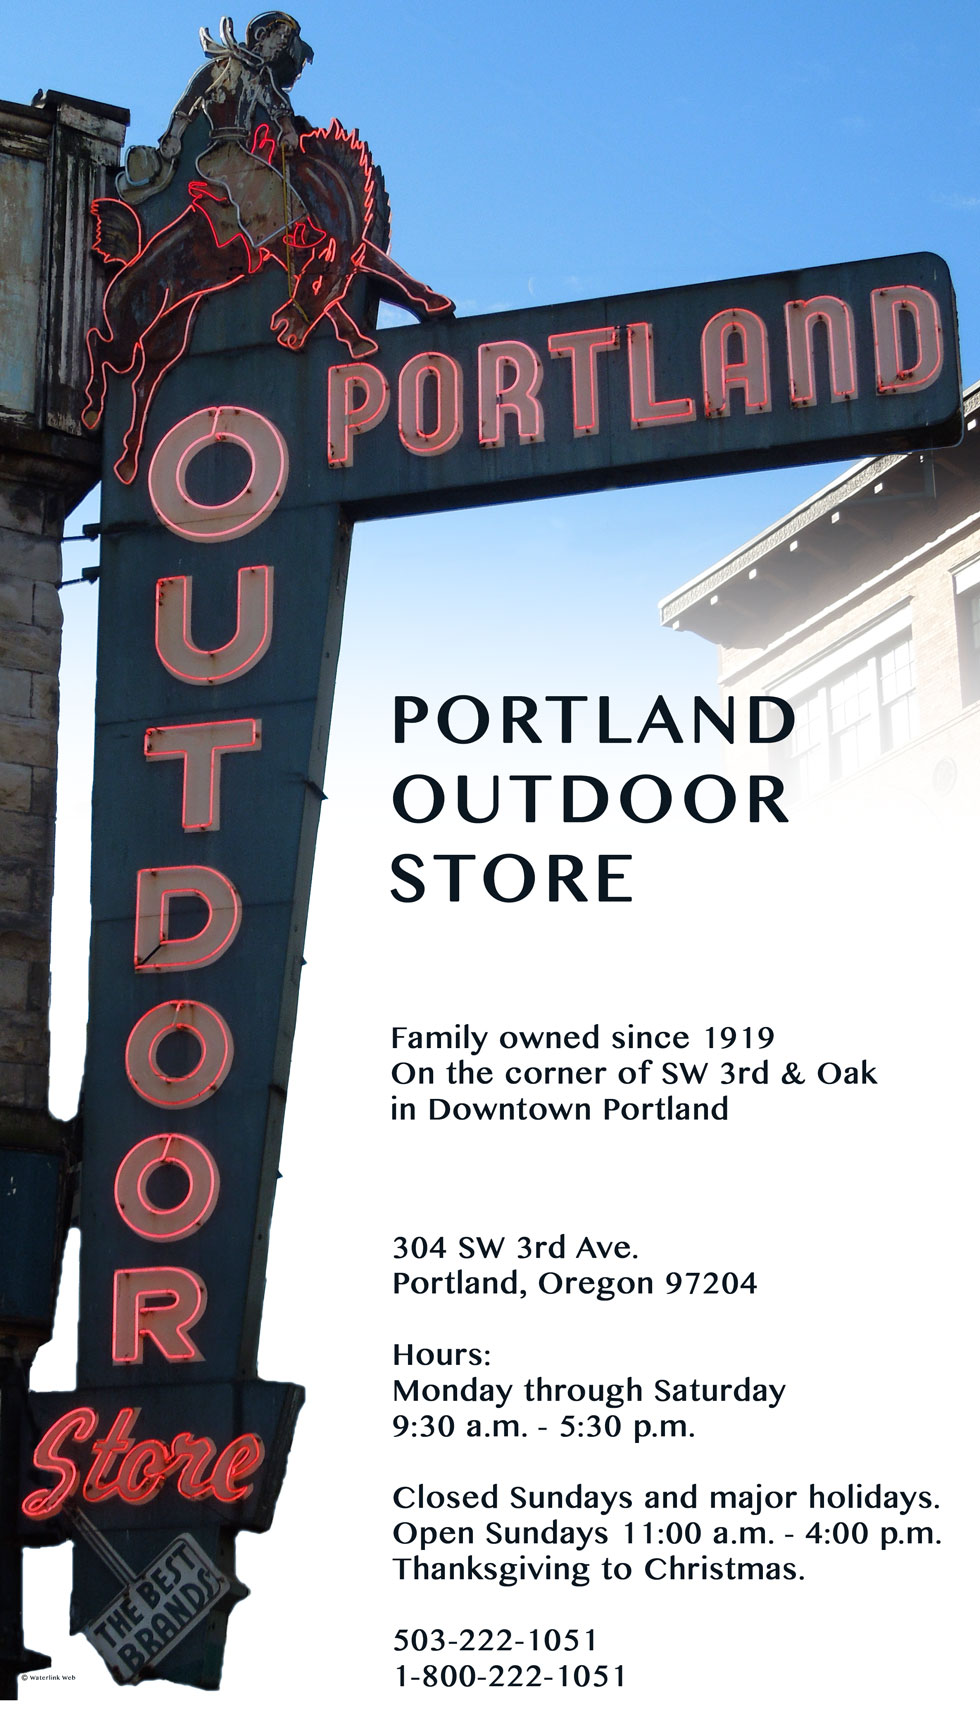 Portland-Outdoor-Store-iconic-sign-980x1710.jpg